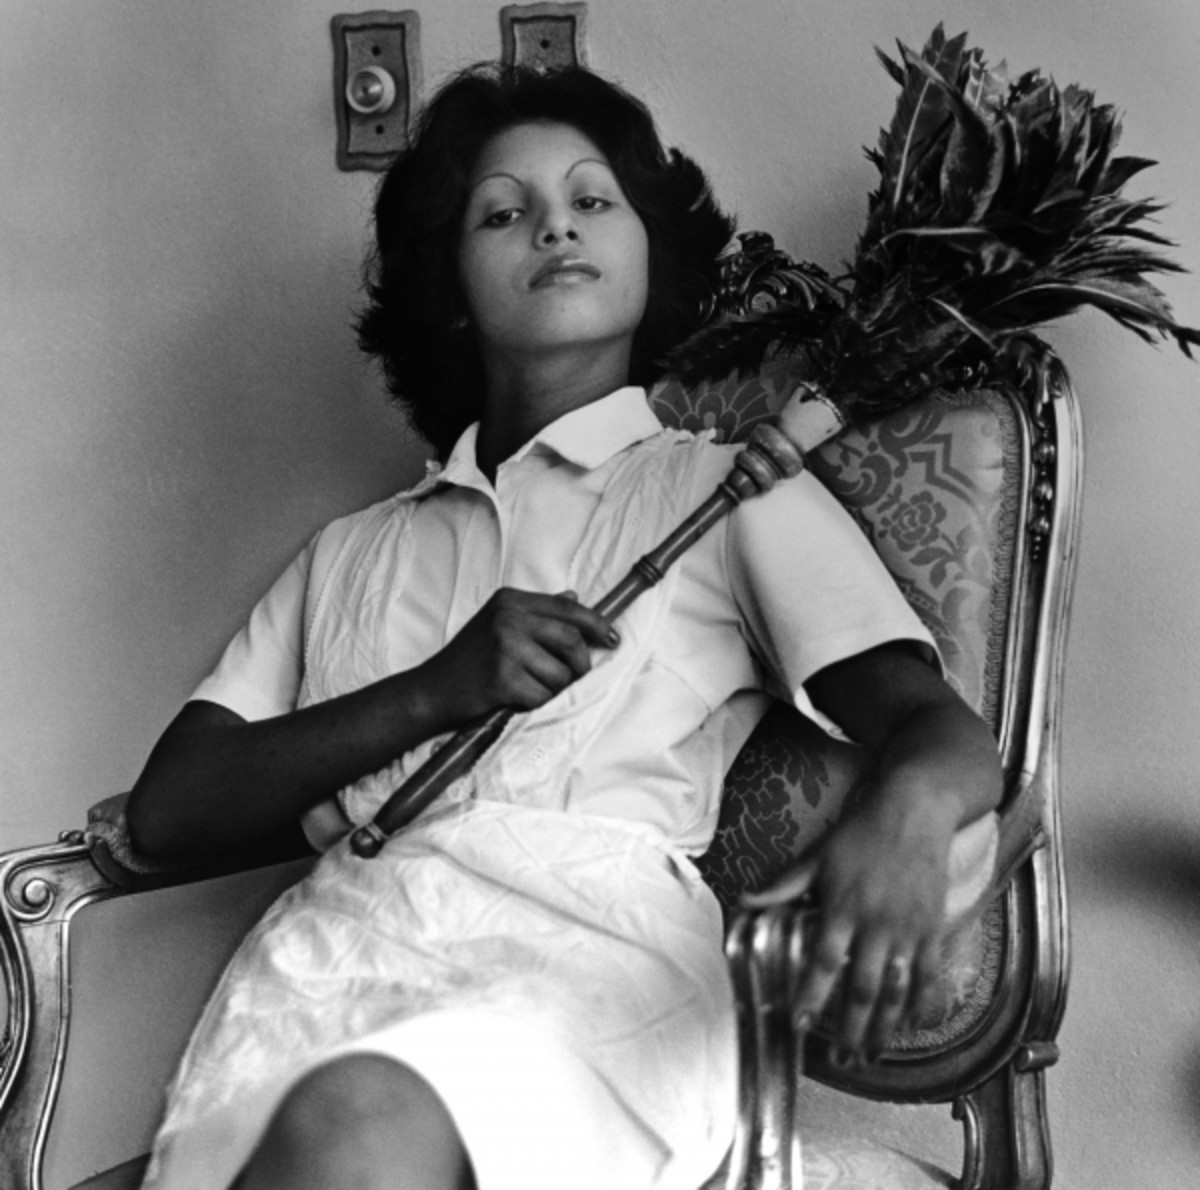 Sandra Eleta (born Panama, 1942). Edita (la del plumero), Panama (Edita [the one with the feather duster], Panama), 1977, from the series La servidumbre (Servitude), 1978-79. Black-and-white photograph, 19 x 19 in. (48.3 x 48.3 cm). Courtesy of Galeria Arteconsult S.A., Panama. © Sandra Eleta